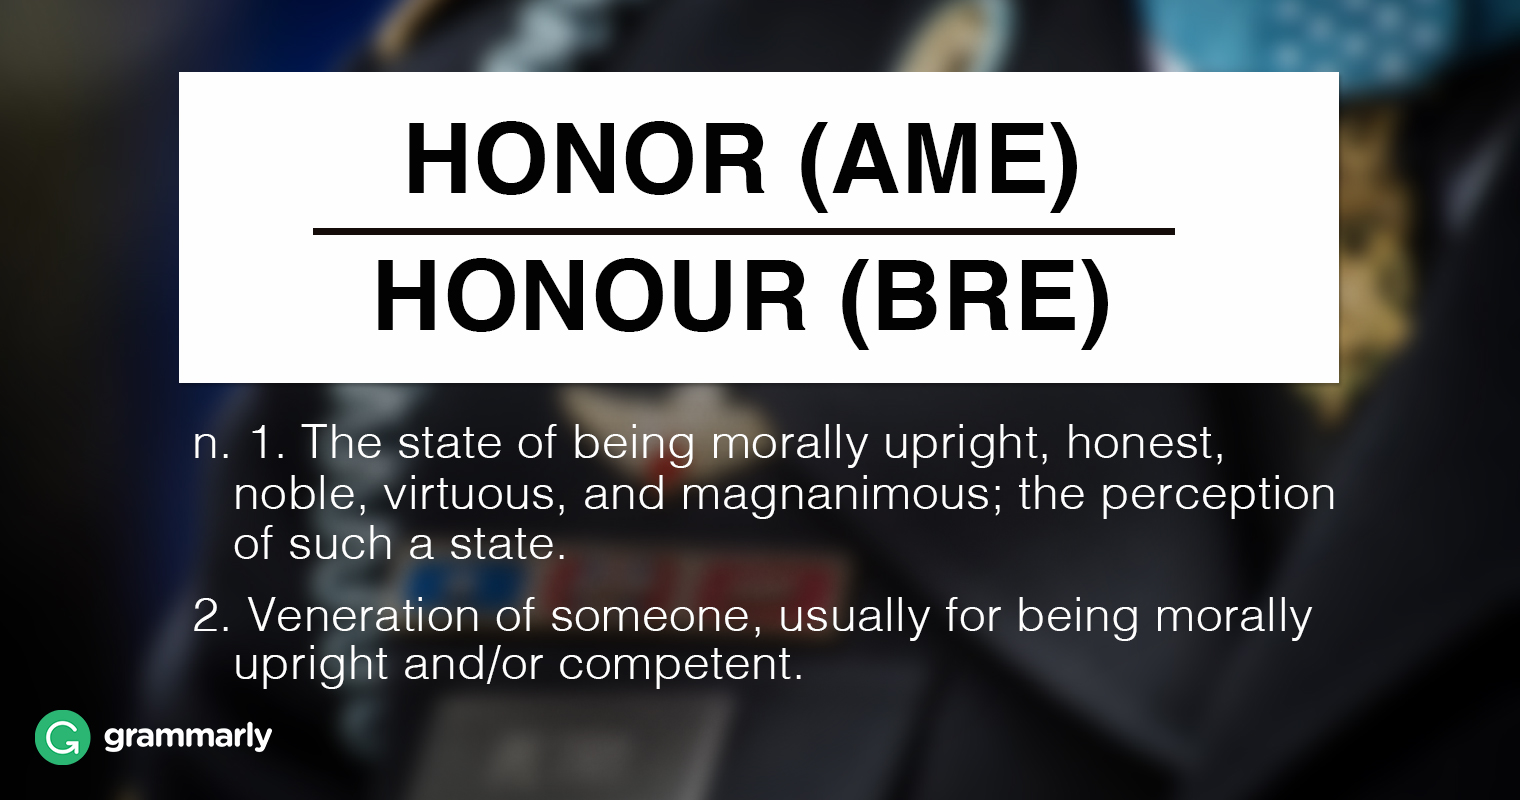 Honor (AmE) Honour (BrE) n. 1.(uncountable) The state of being morally upright, honest, noble, virtuous, and magnanimous; the perception of such a state. 2.(uncountable) Veneration of someone, usually for being morally upright and/or competent.